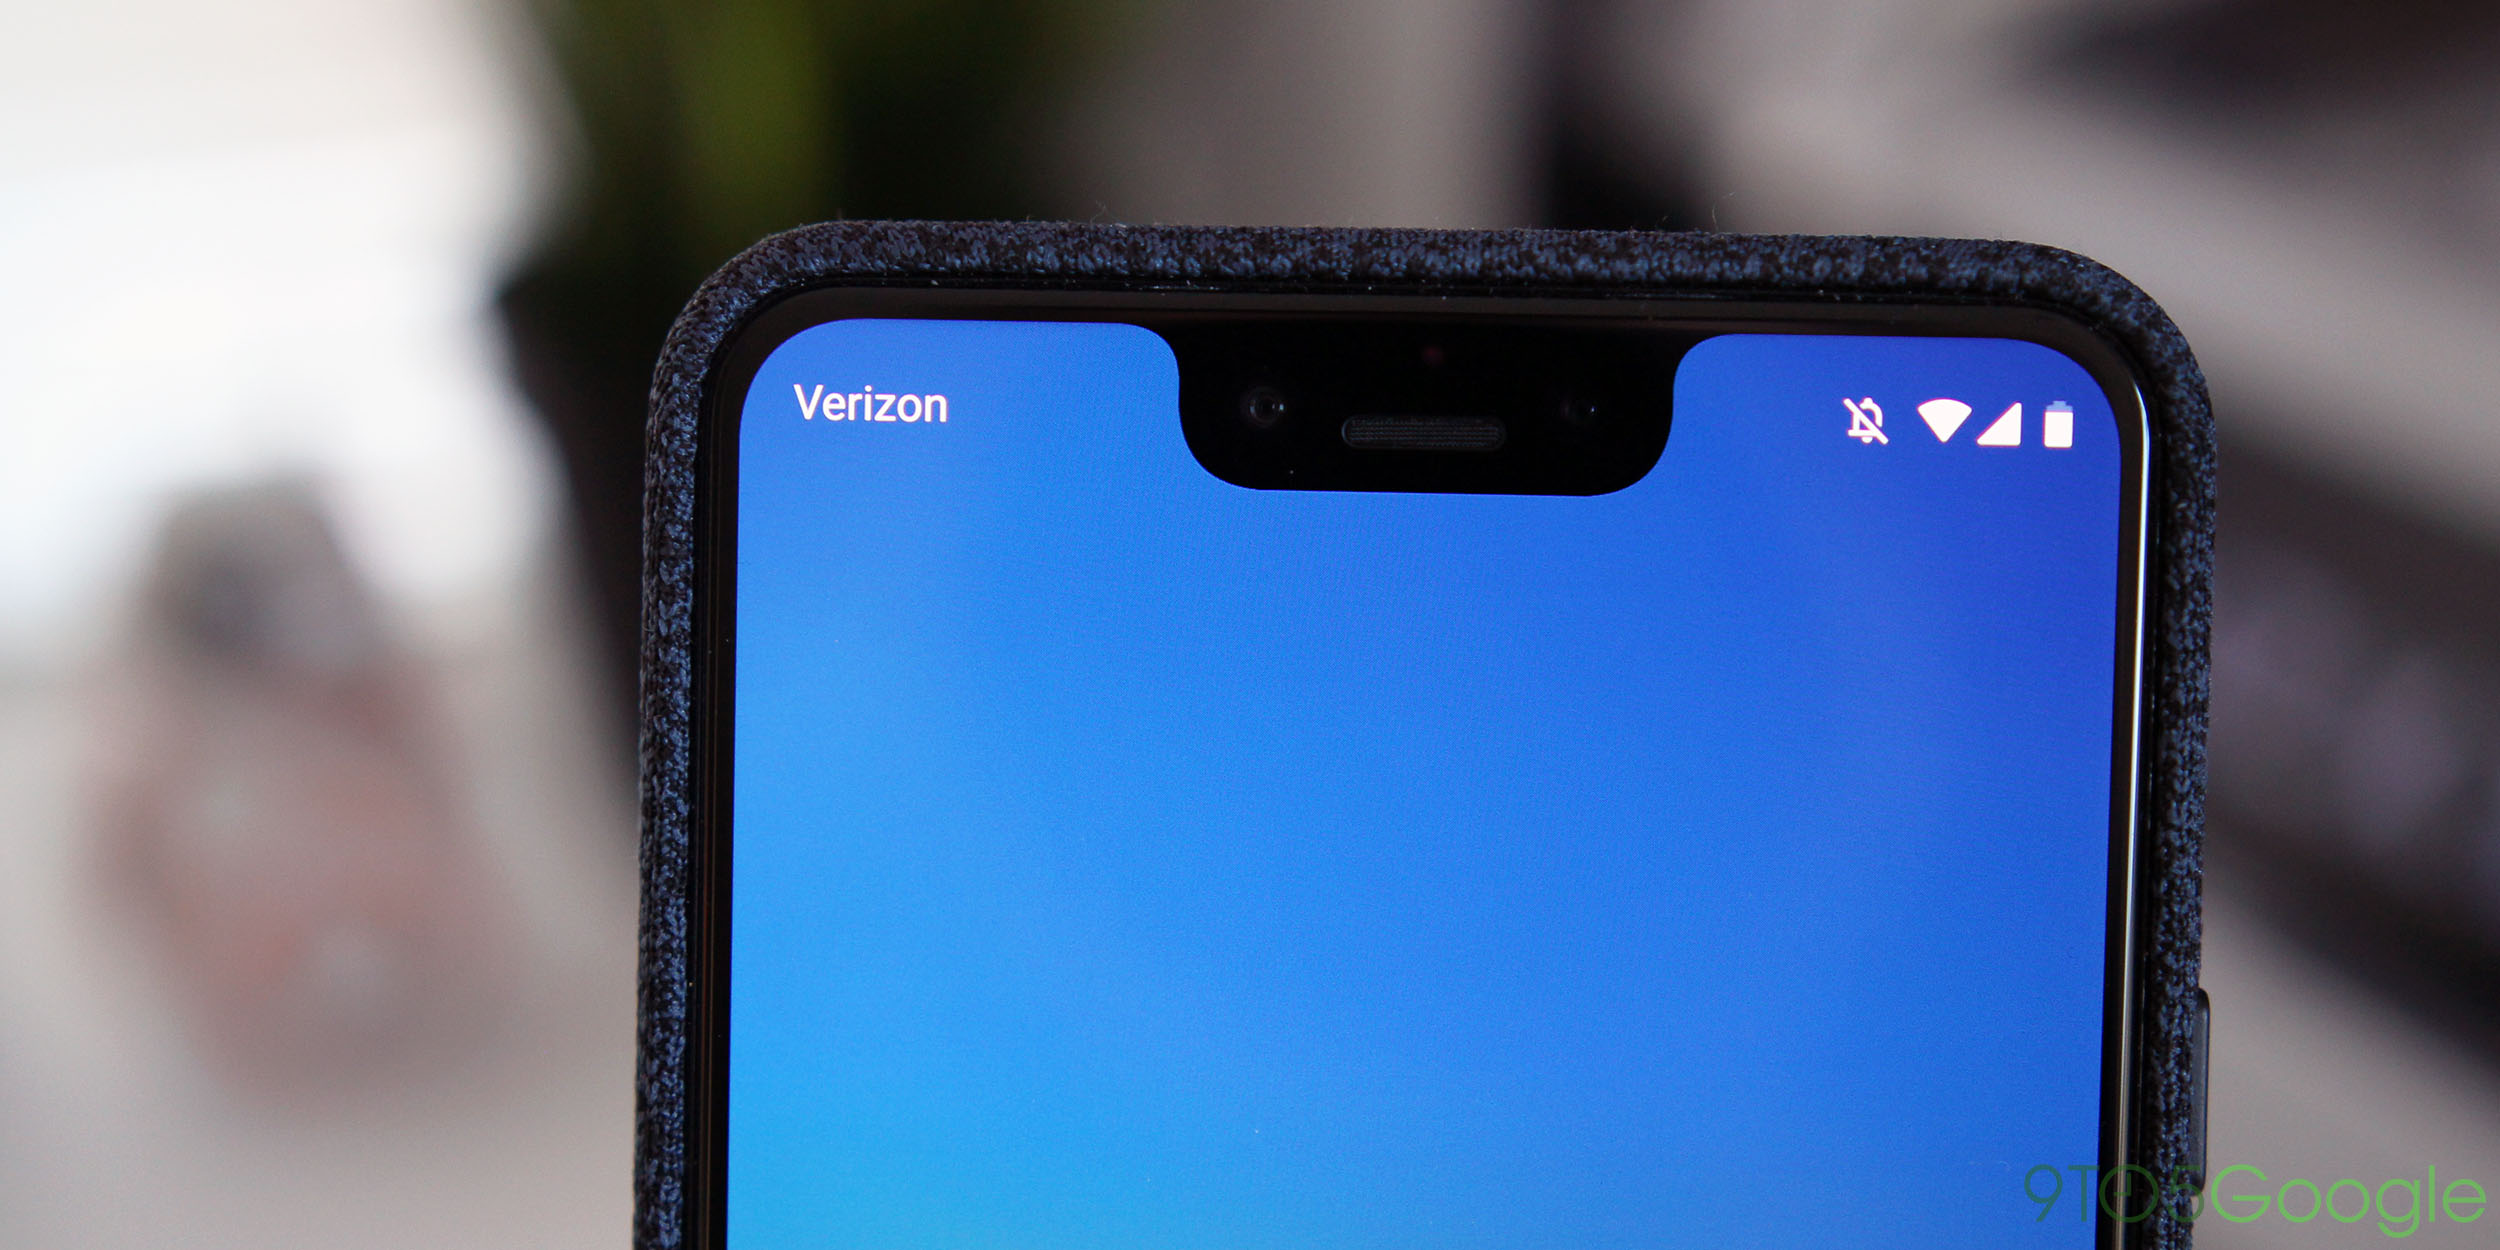 verizon google pixel 3 is sim locked will need to be unlocked to use on other carriers